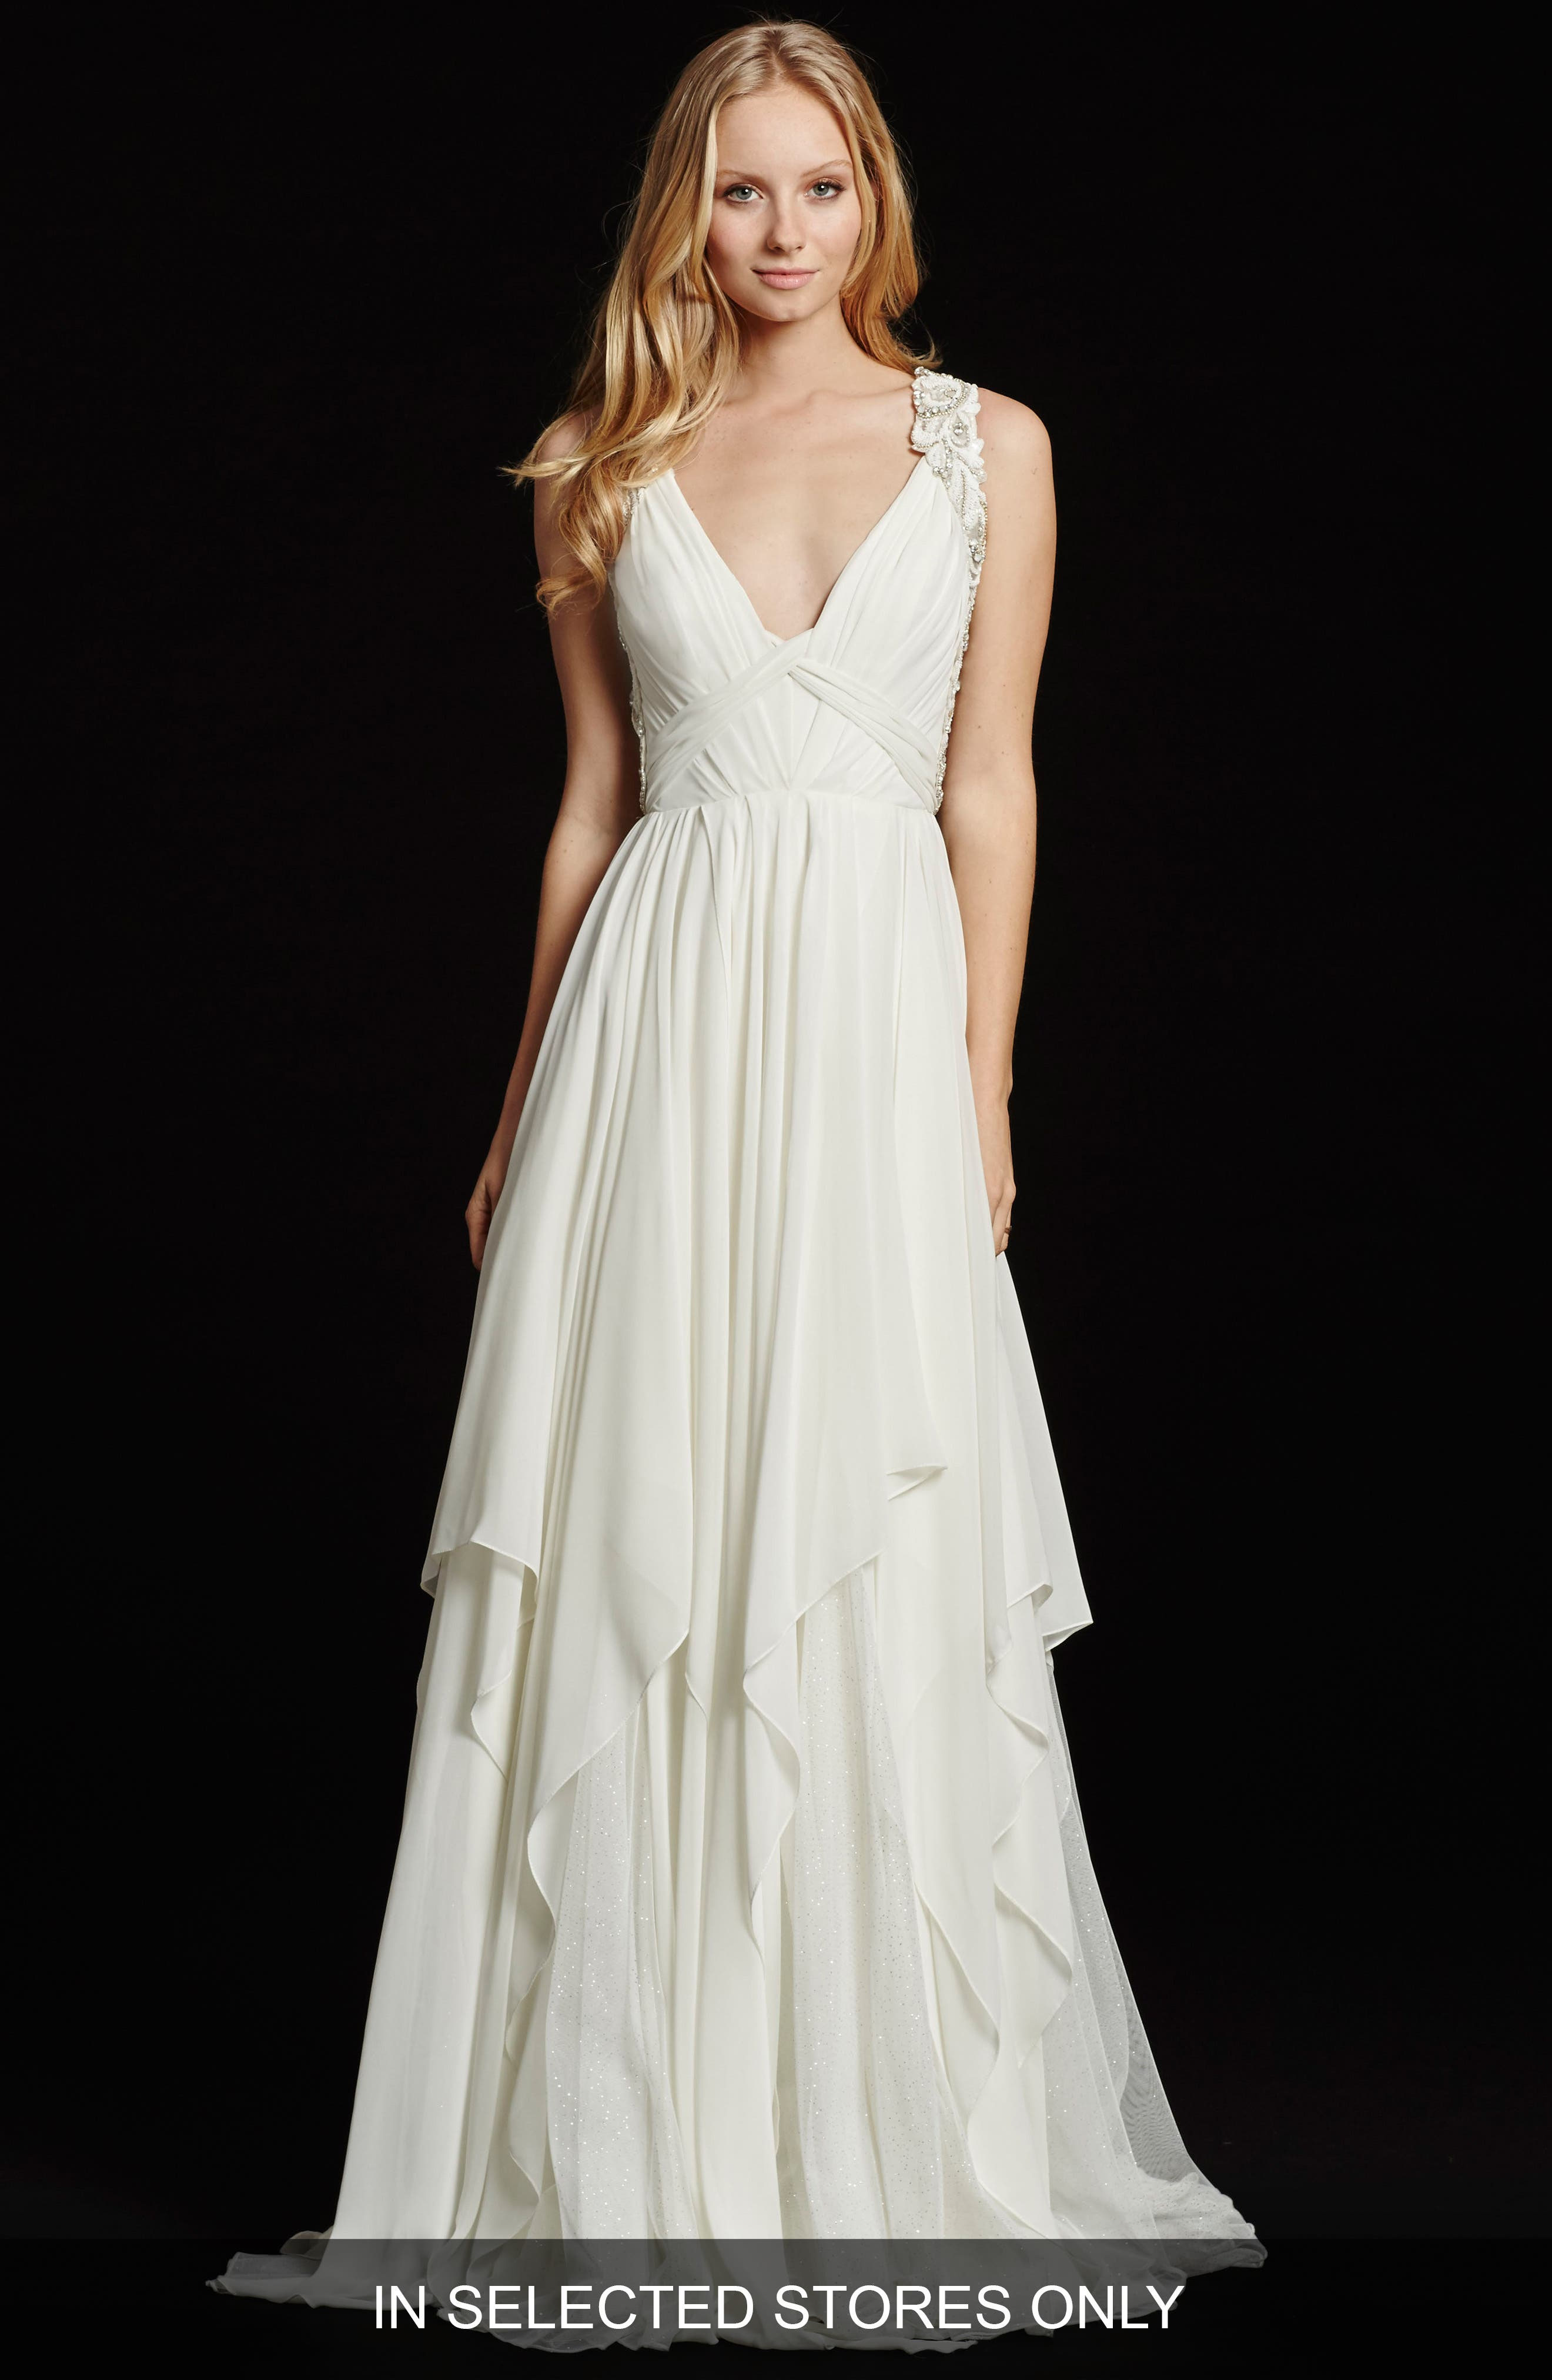 Alternate Image 1 Selected - Hayley Paige Gwen Sleeveless Grecian Draped Bodice Chiffon Gown